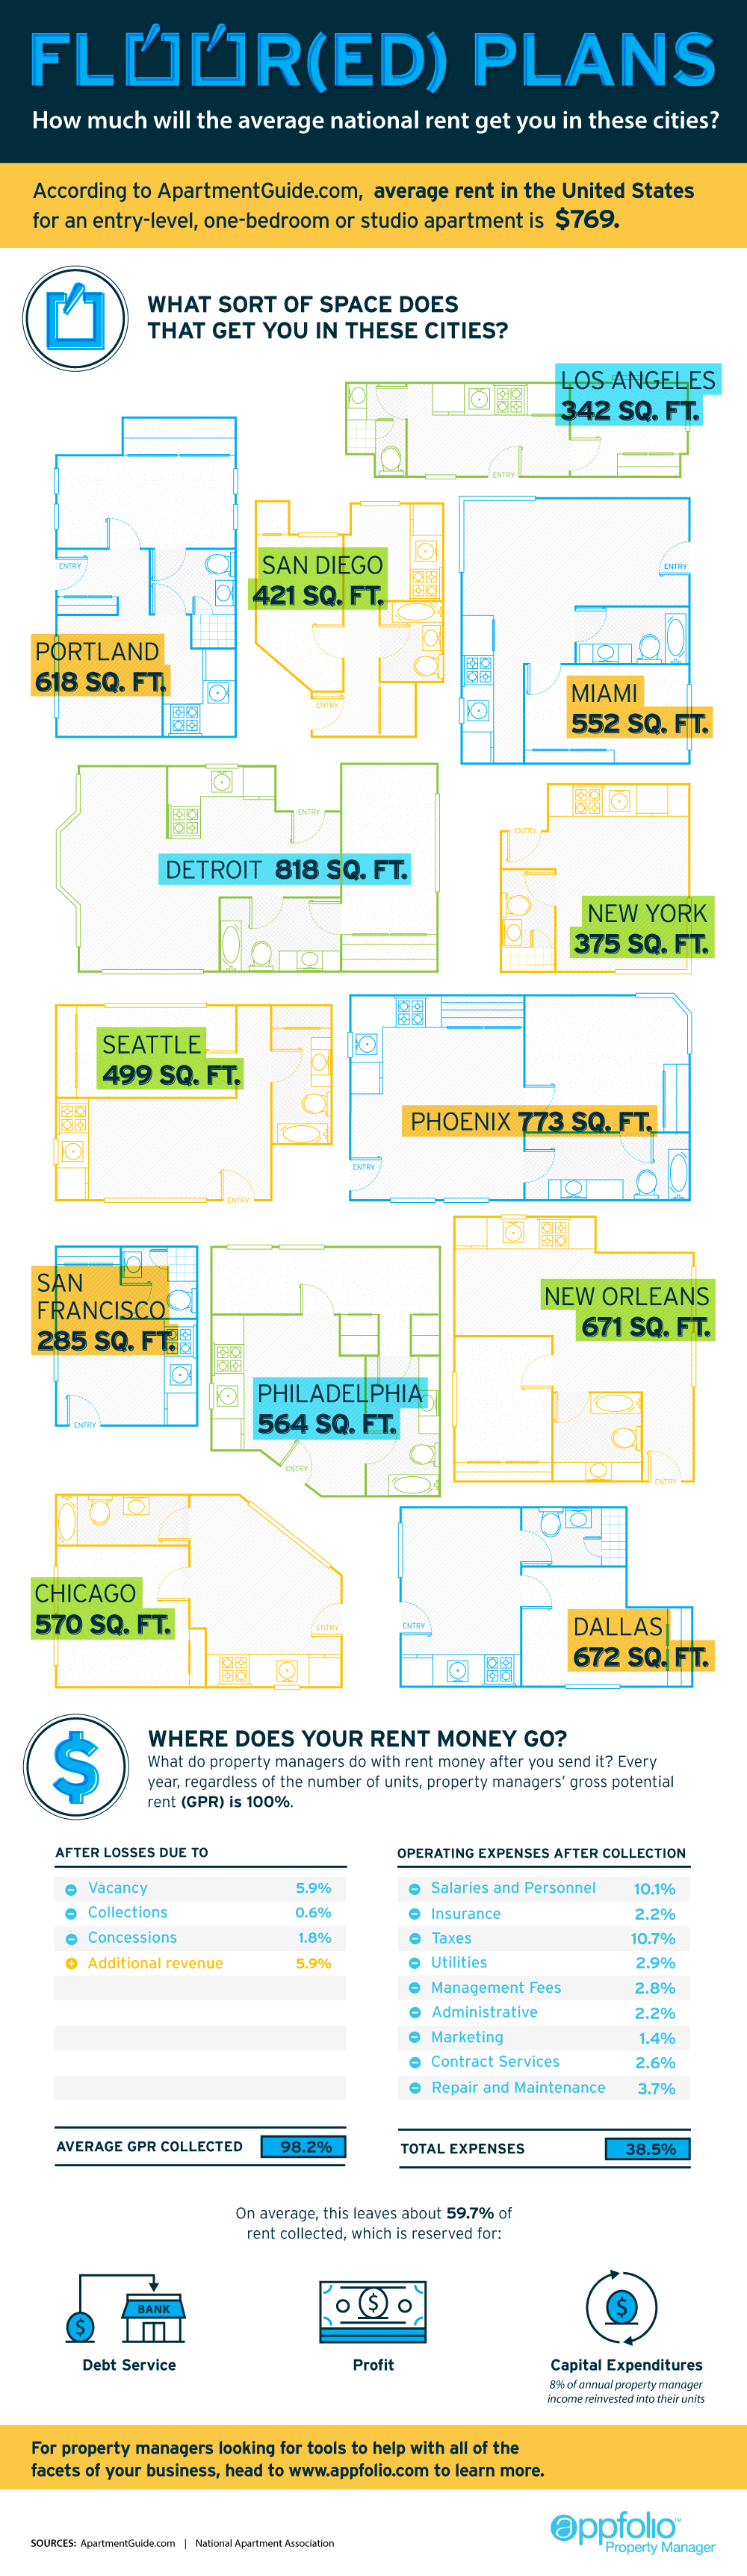 How Much Will the Average National Rent Get You?